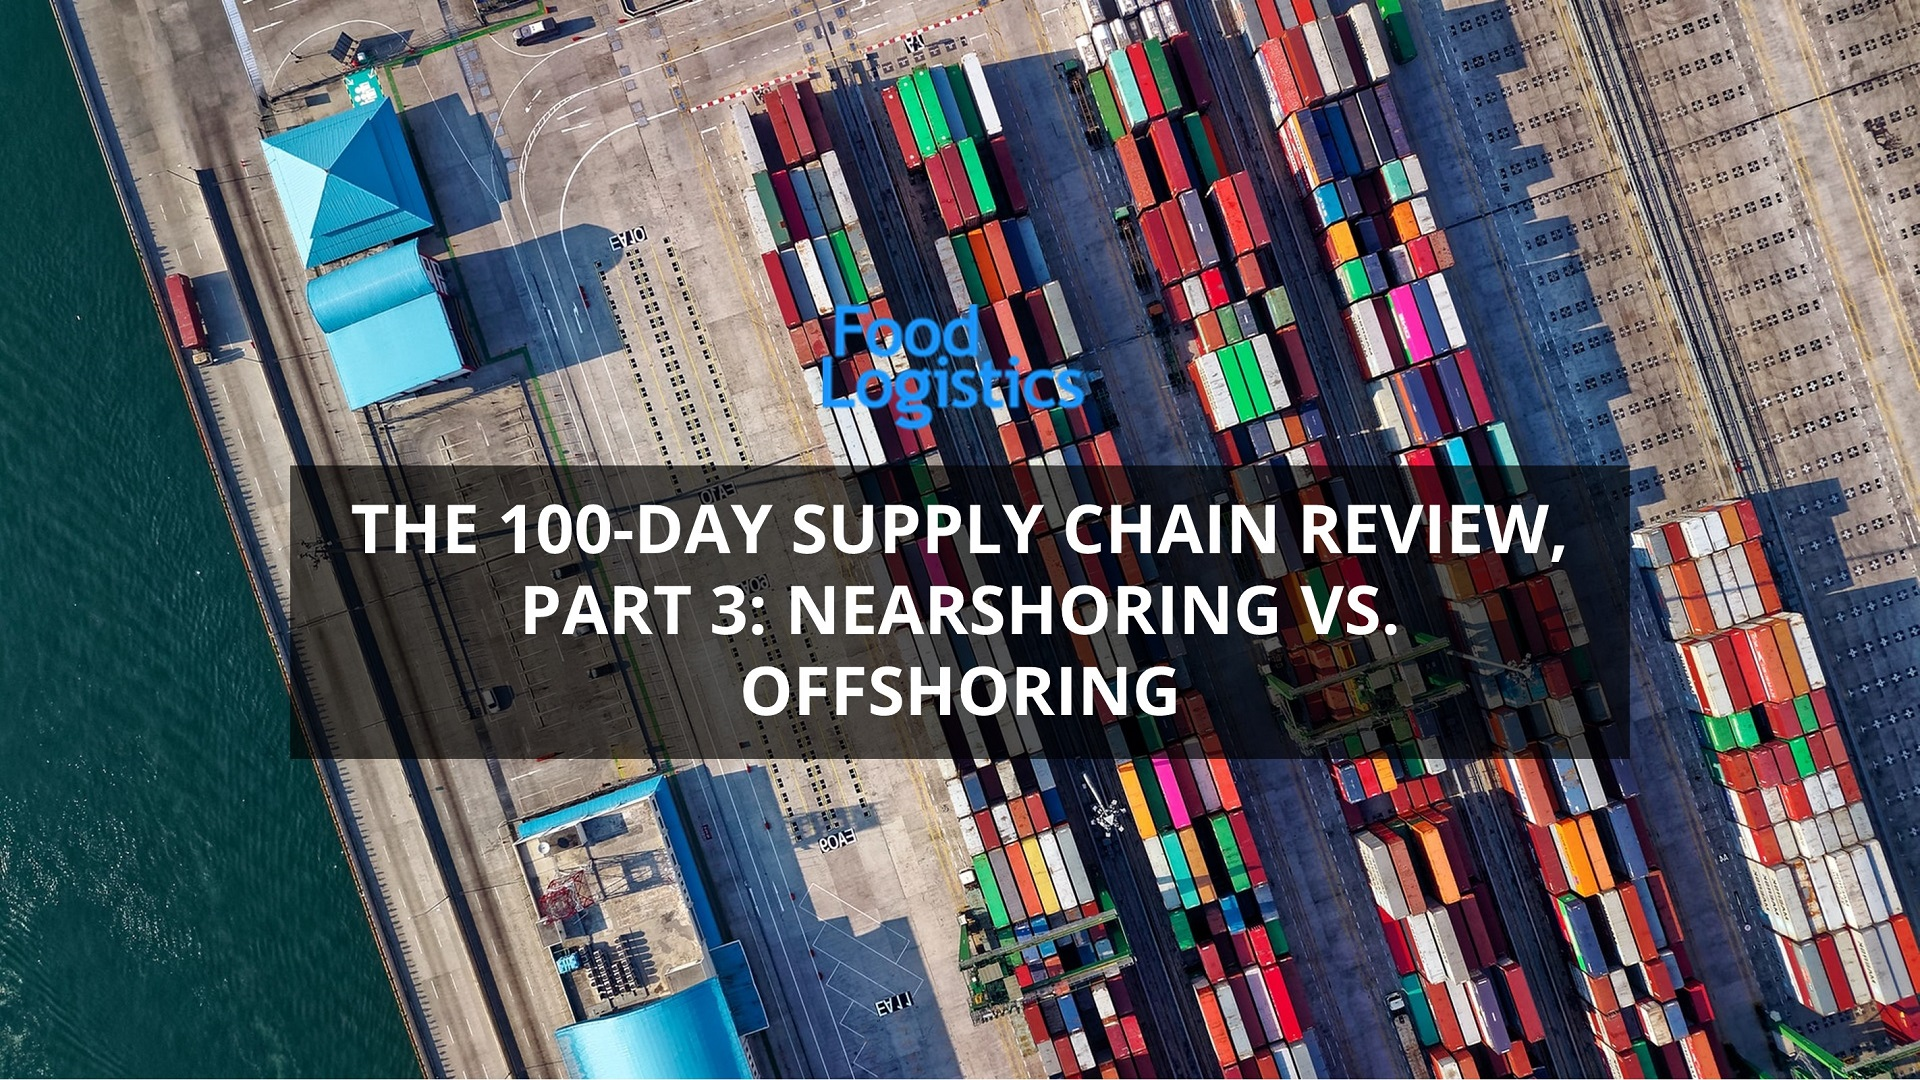 US Supply Chain Review - Nearshoring Vs Offshoring